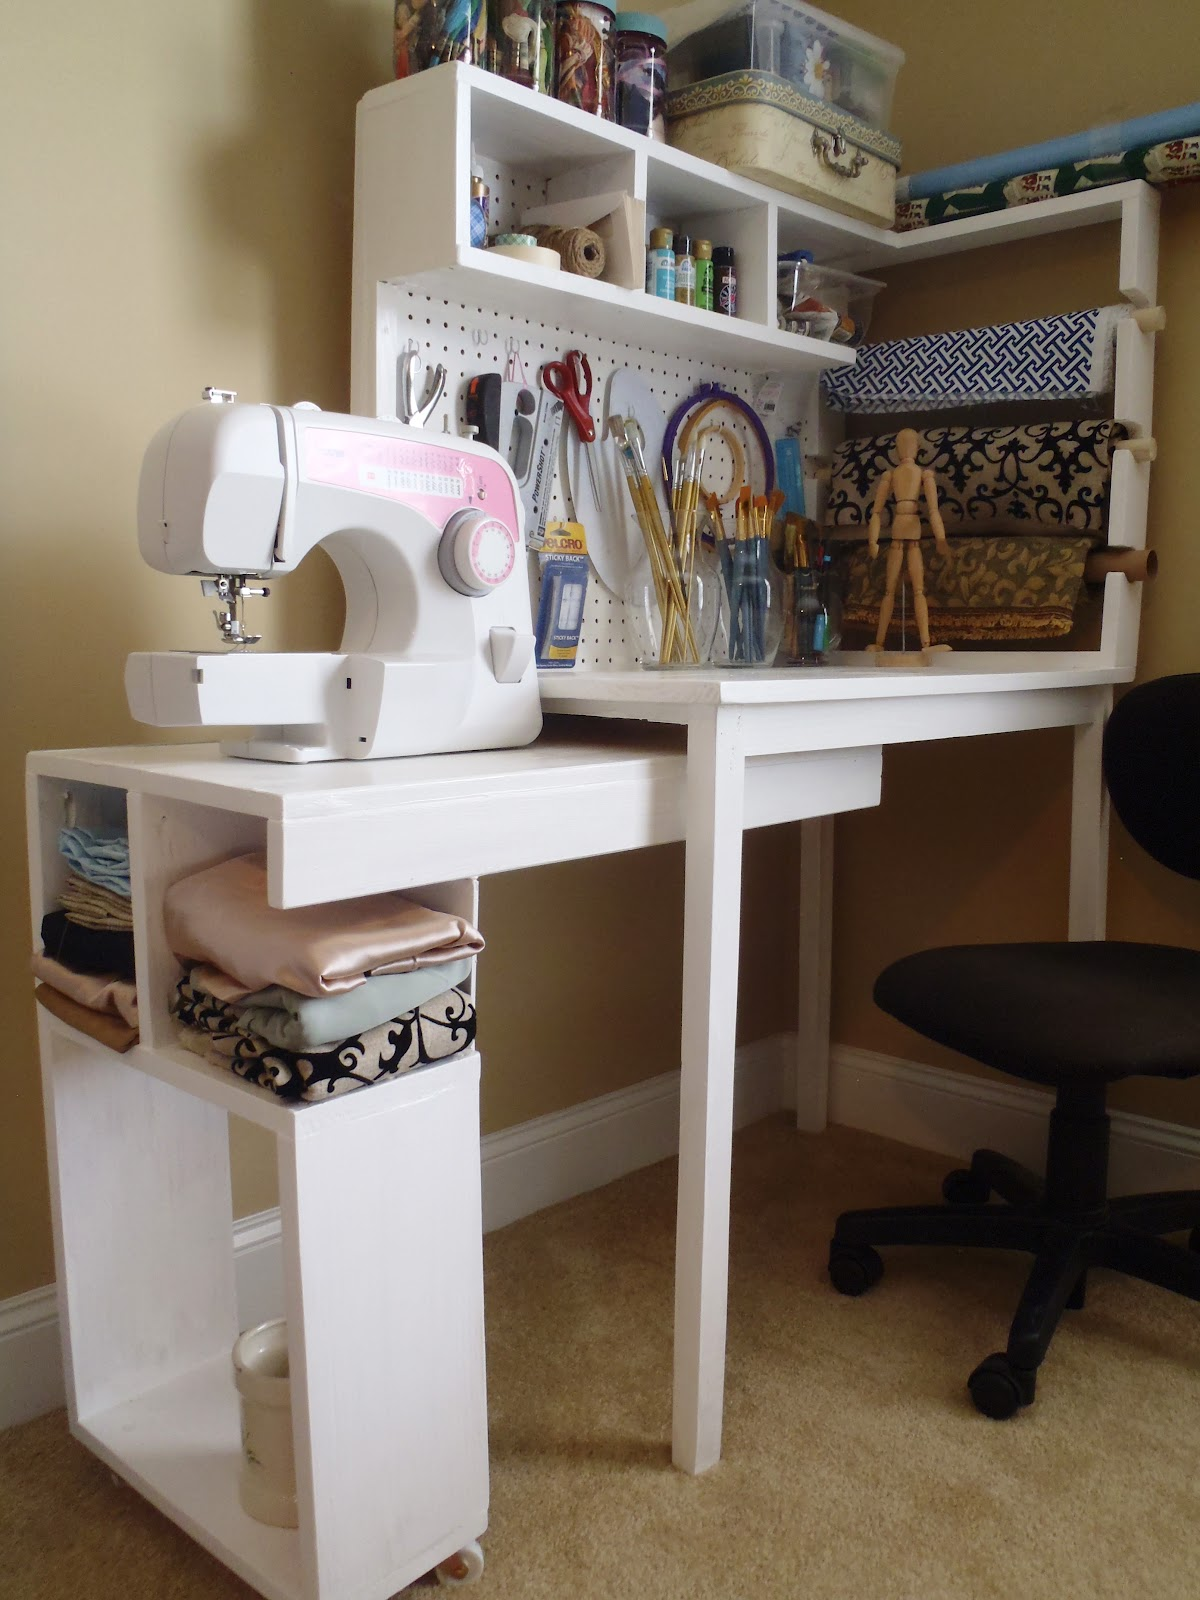 Make your own craft table - Make A Craft Table Make Your Own Craft Table Build A 2x4 Craft Table 467x423